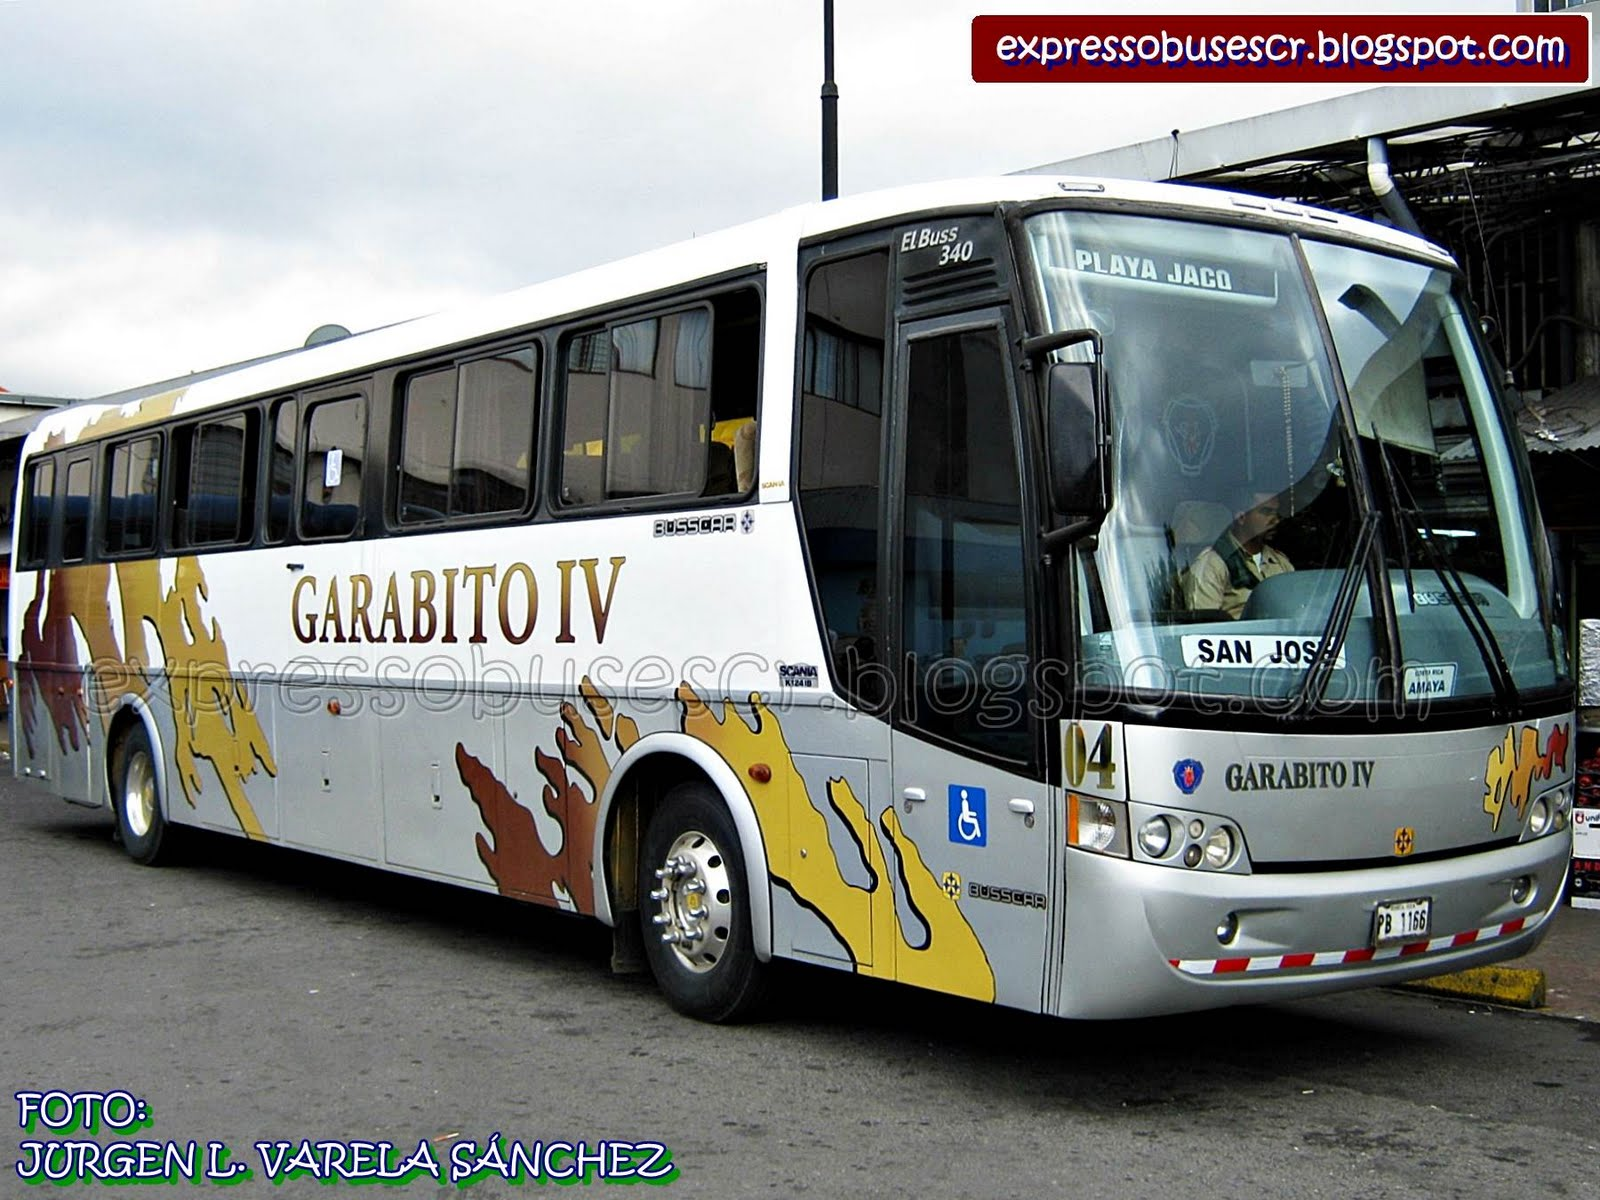 Scania busscar photo - 1